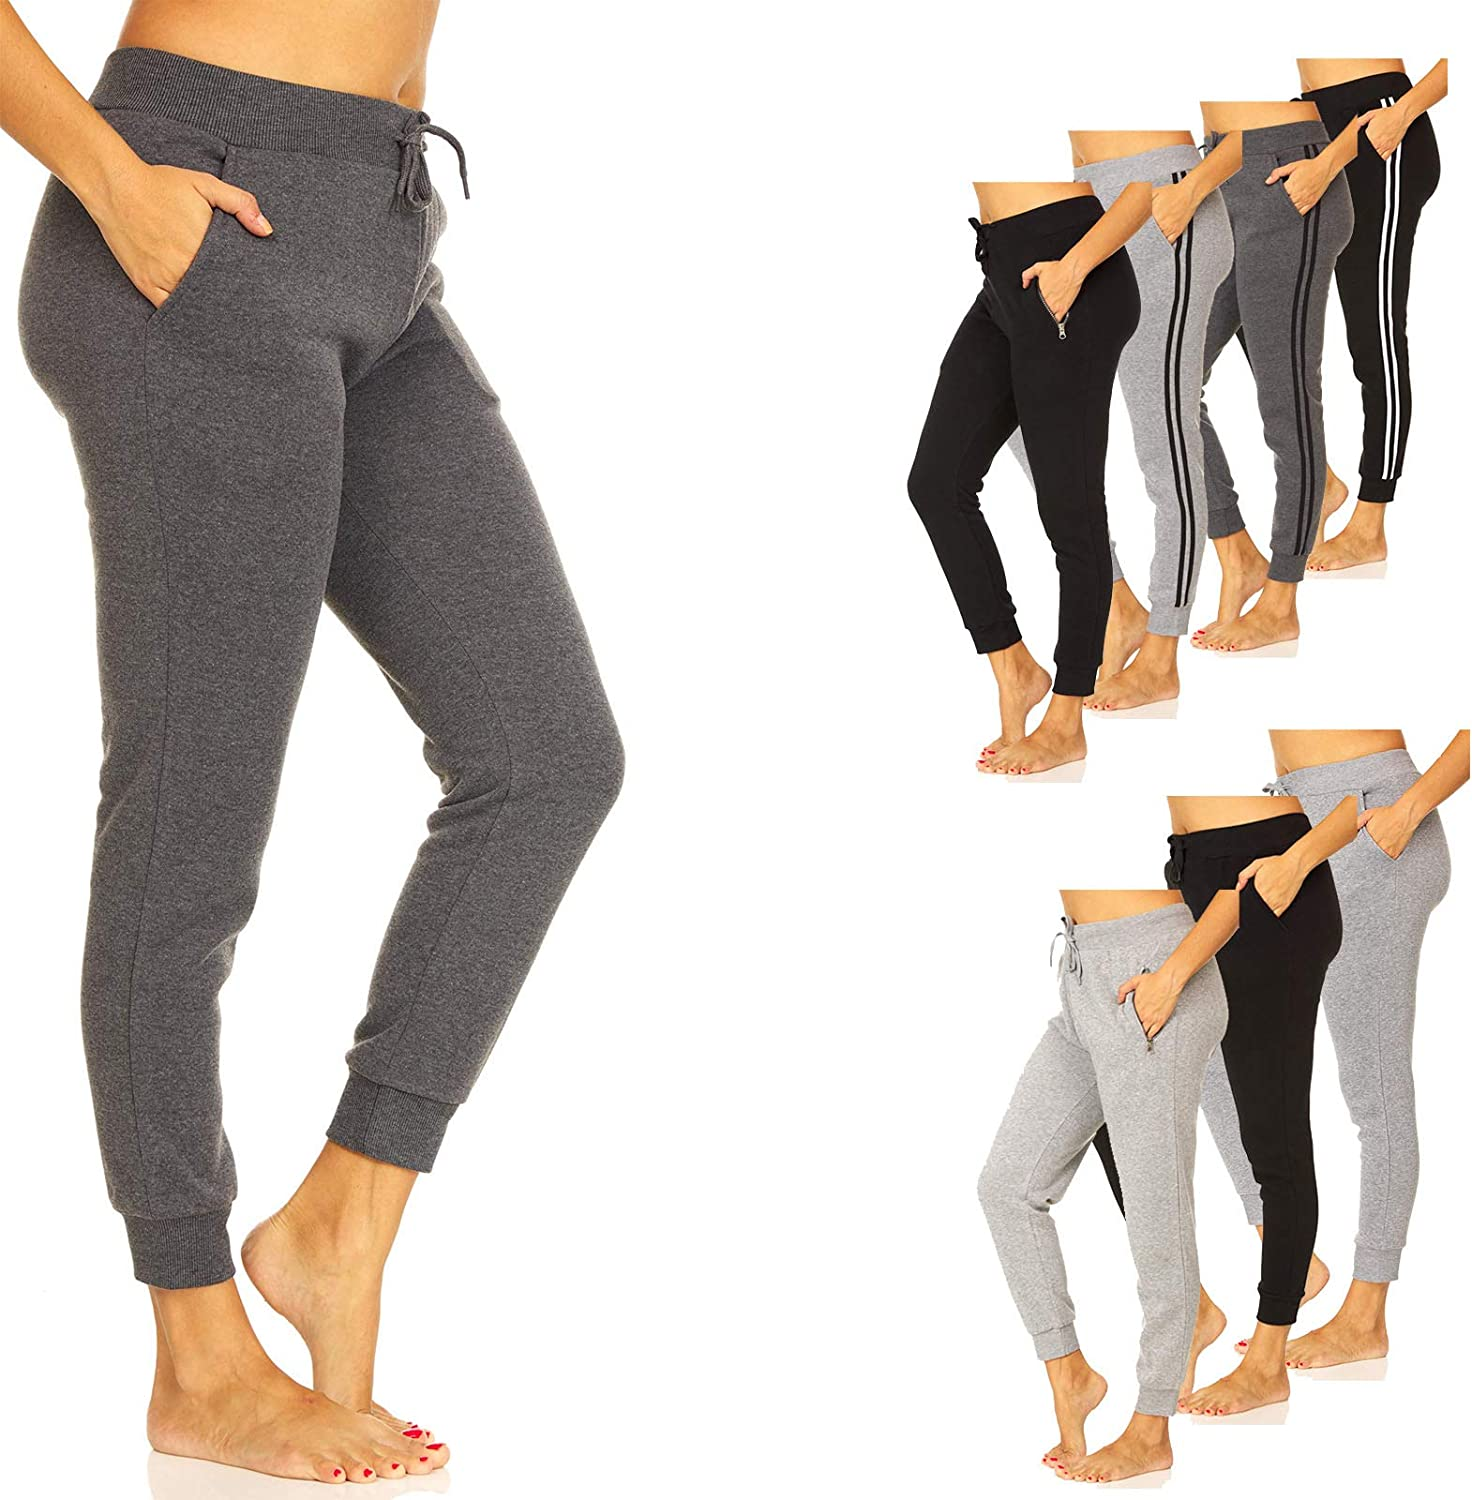 UNIQUE STYLES ASFOOR Fleece Joggers Sweatpants for Women with Pockets - Pajama Pants, Comfy Sweats with Pockets